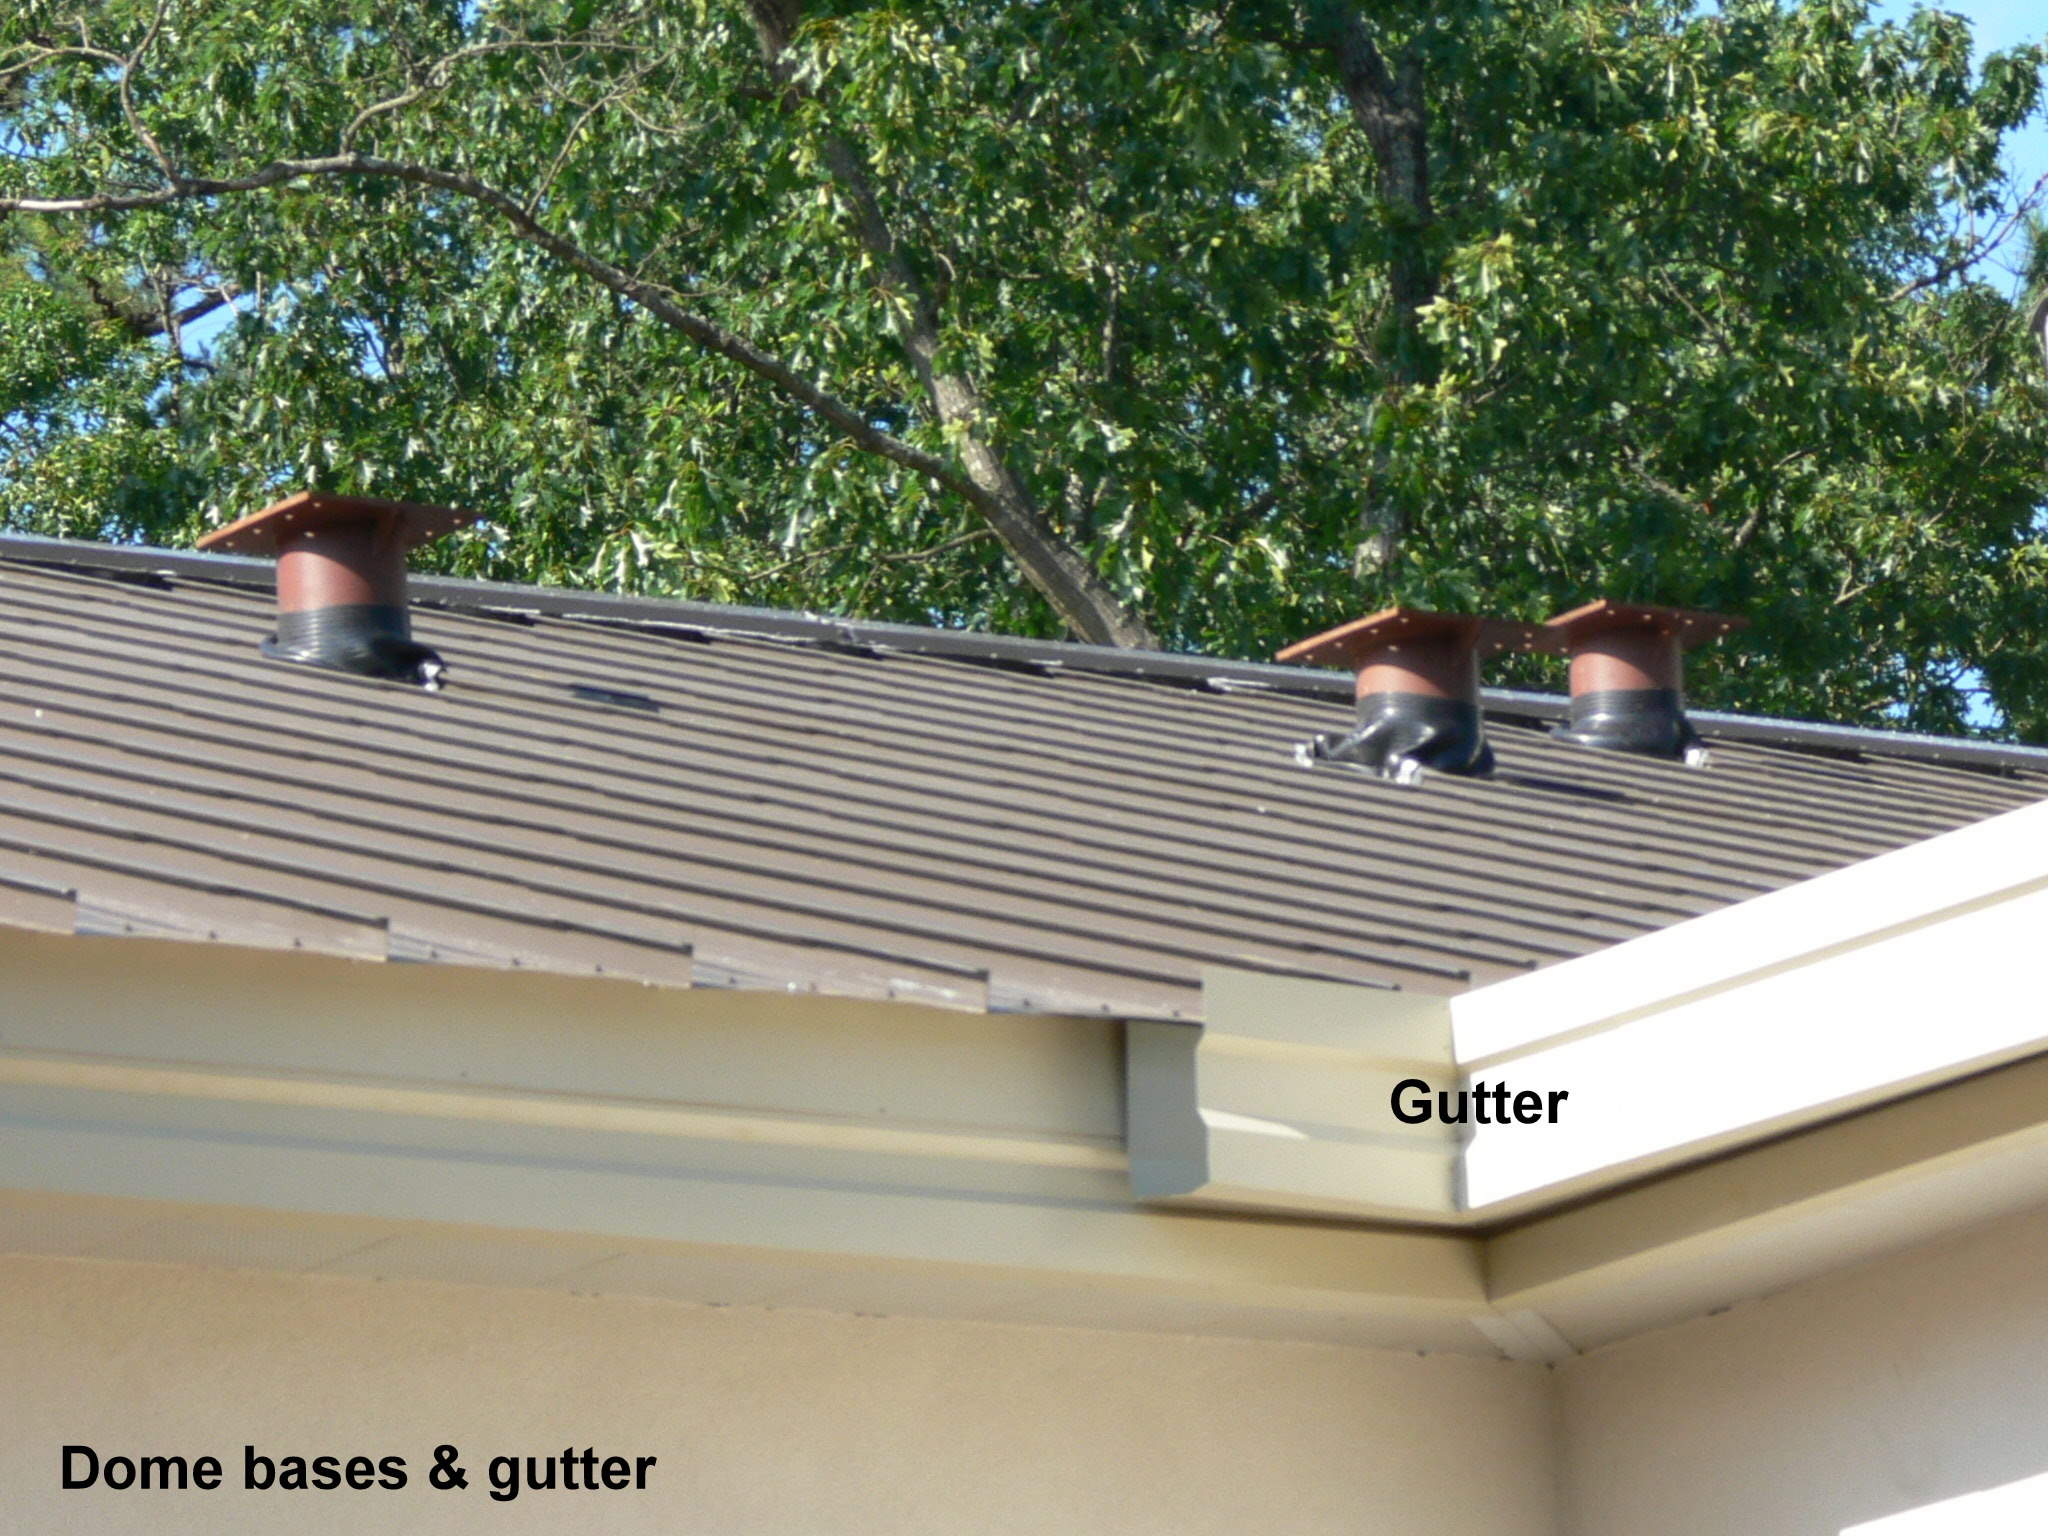 1-dome-base-gutter